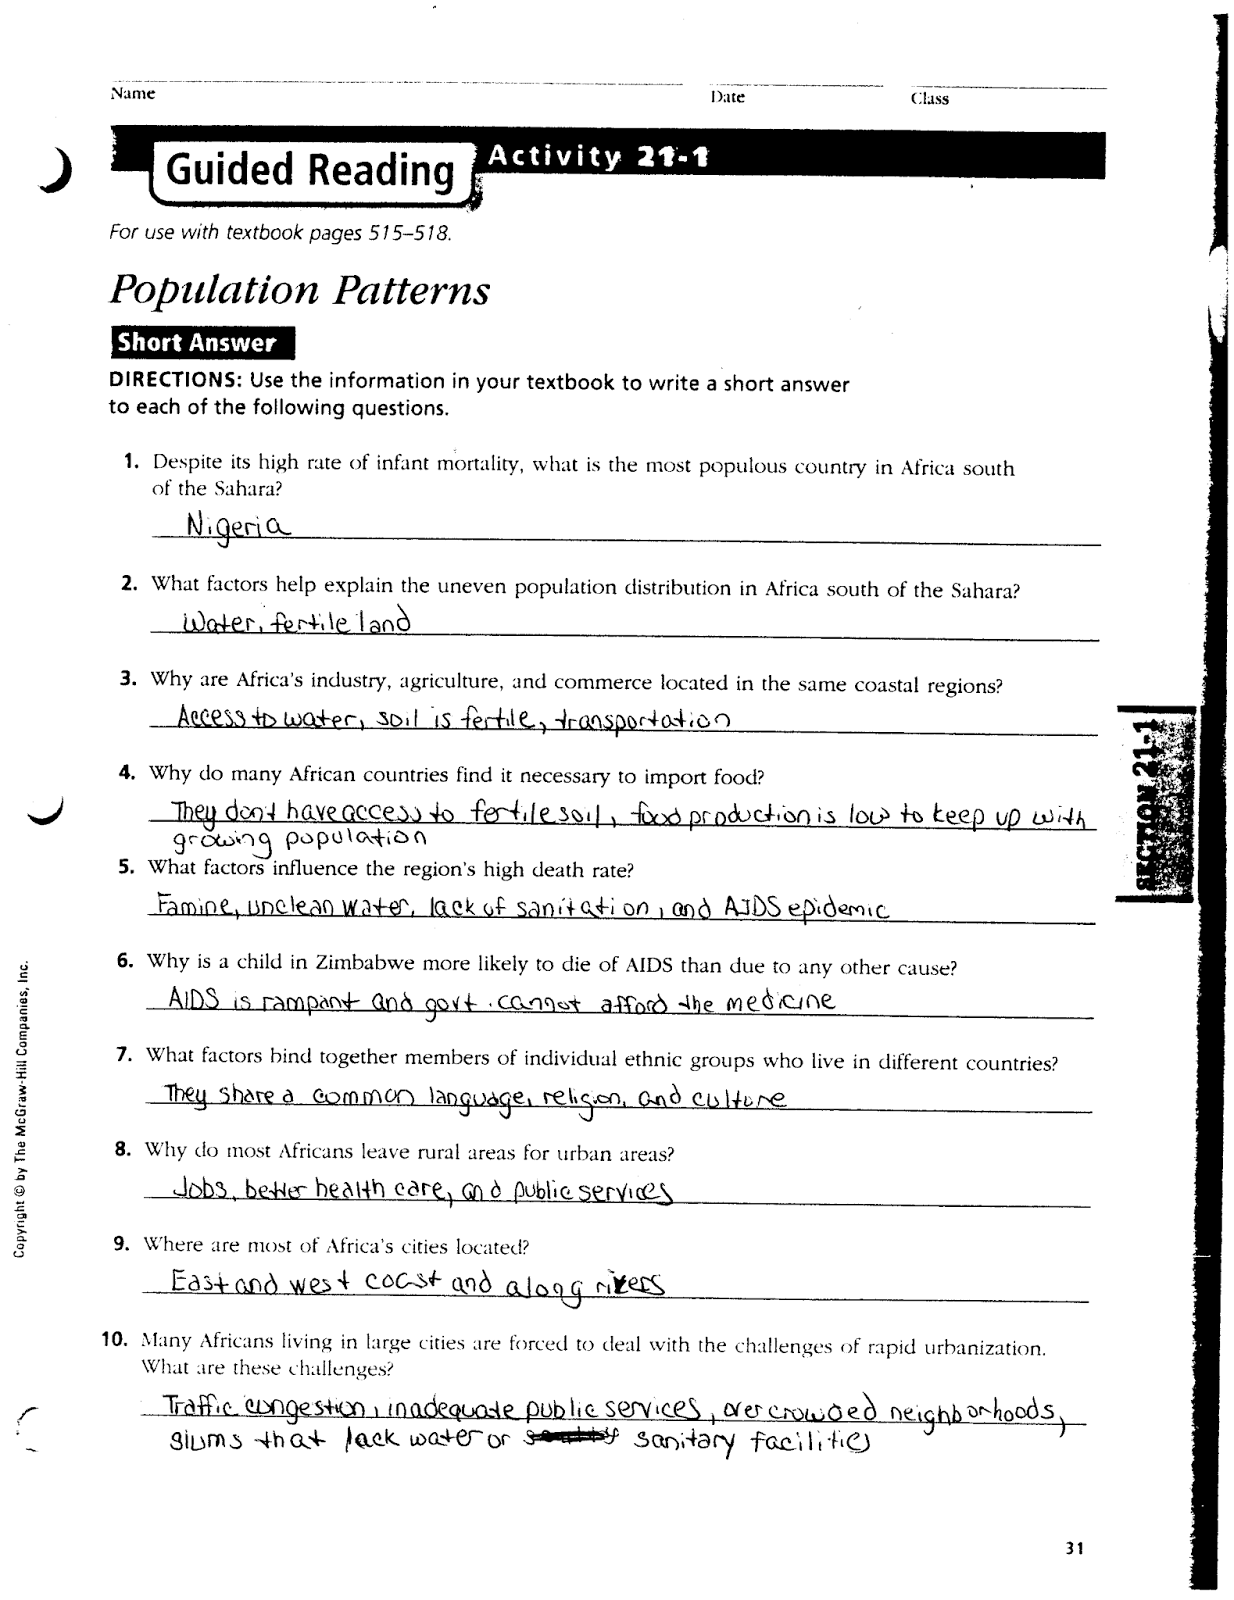 mr e s world geography page world geography chapter 21 the rh acewg blogspot com guided reading activity 21-1 east africa answer key guided reading activity 21-1 us history answer key